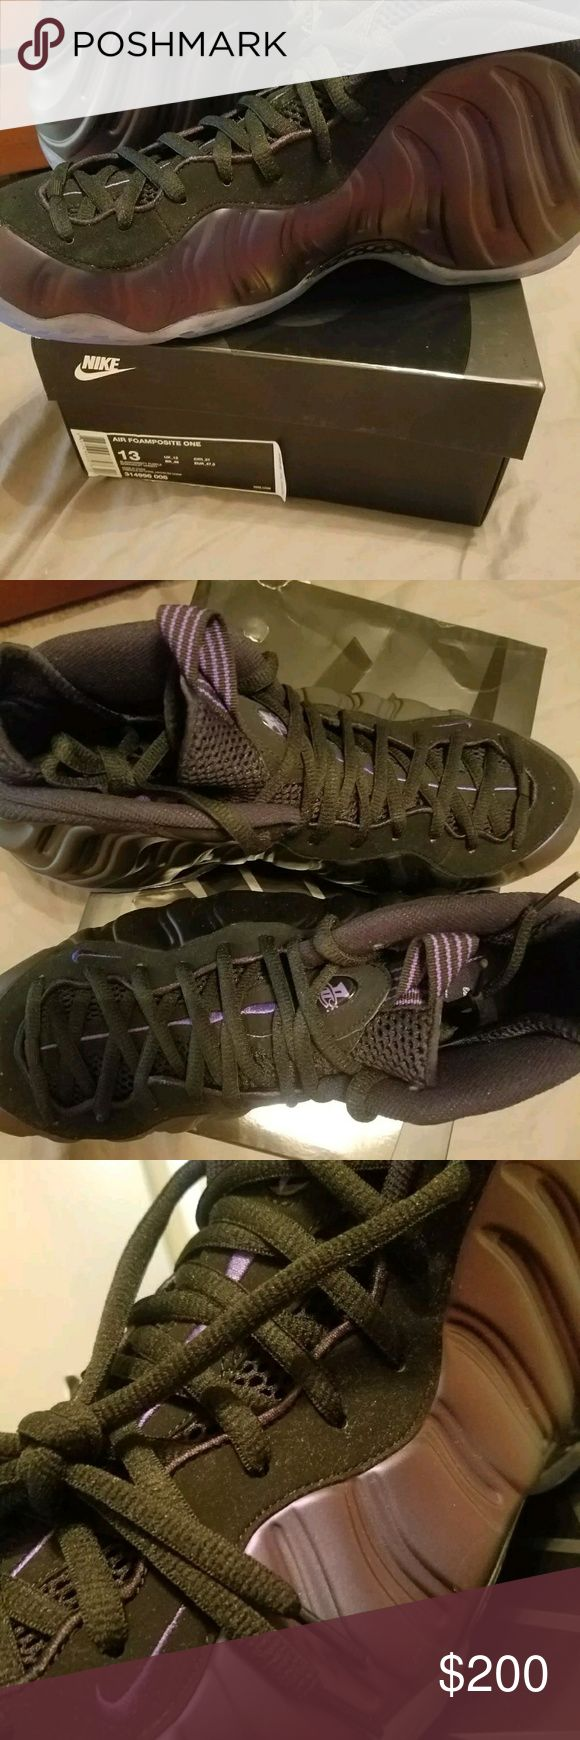 Mens Nike Air FOAMPOSITE SIZE-13 Brand new size 13 Air Foamposite One Color is Black with an amazing Varsity Purple.These sneakers are 100% perfect! This color combination is perfect for all seasons. These sneakers can be dressed up or down depending on your mood. MSRP- $230 Nike Shoes Sneakers